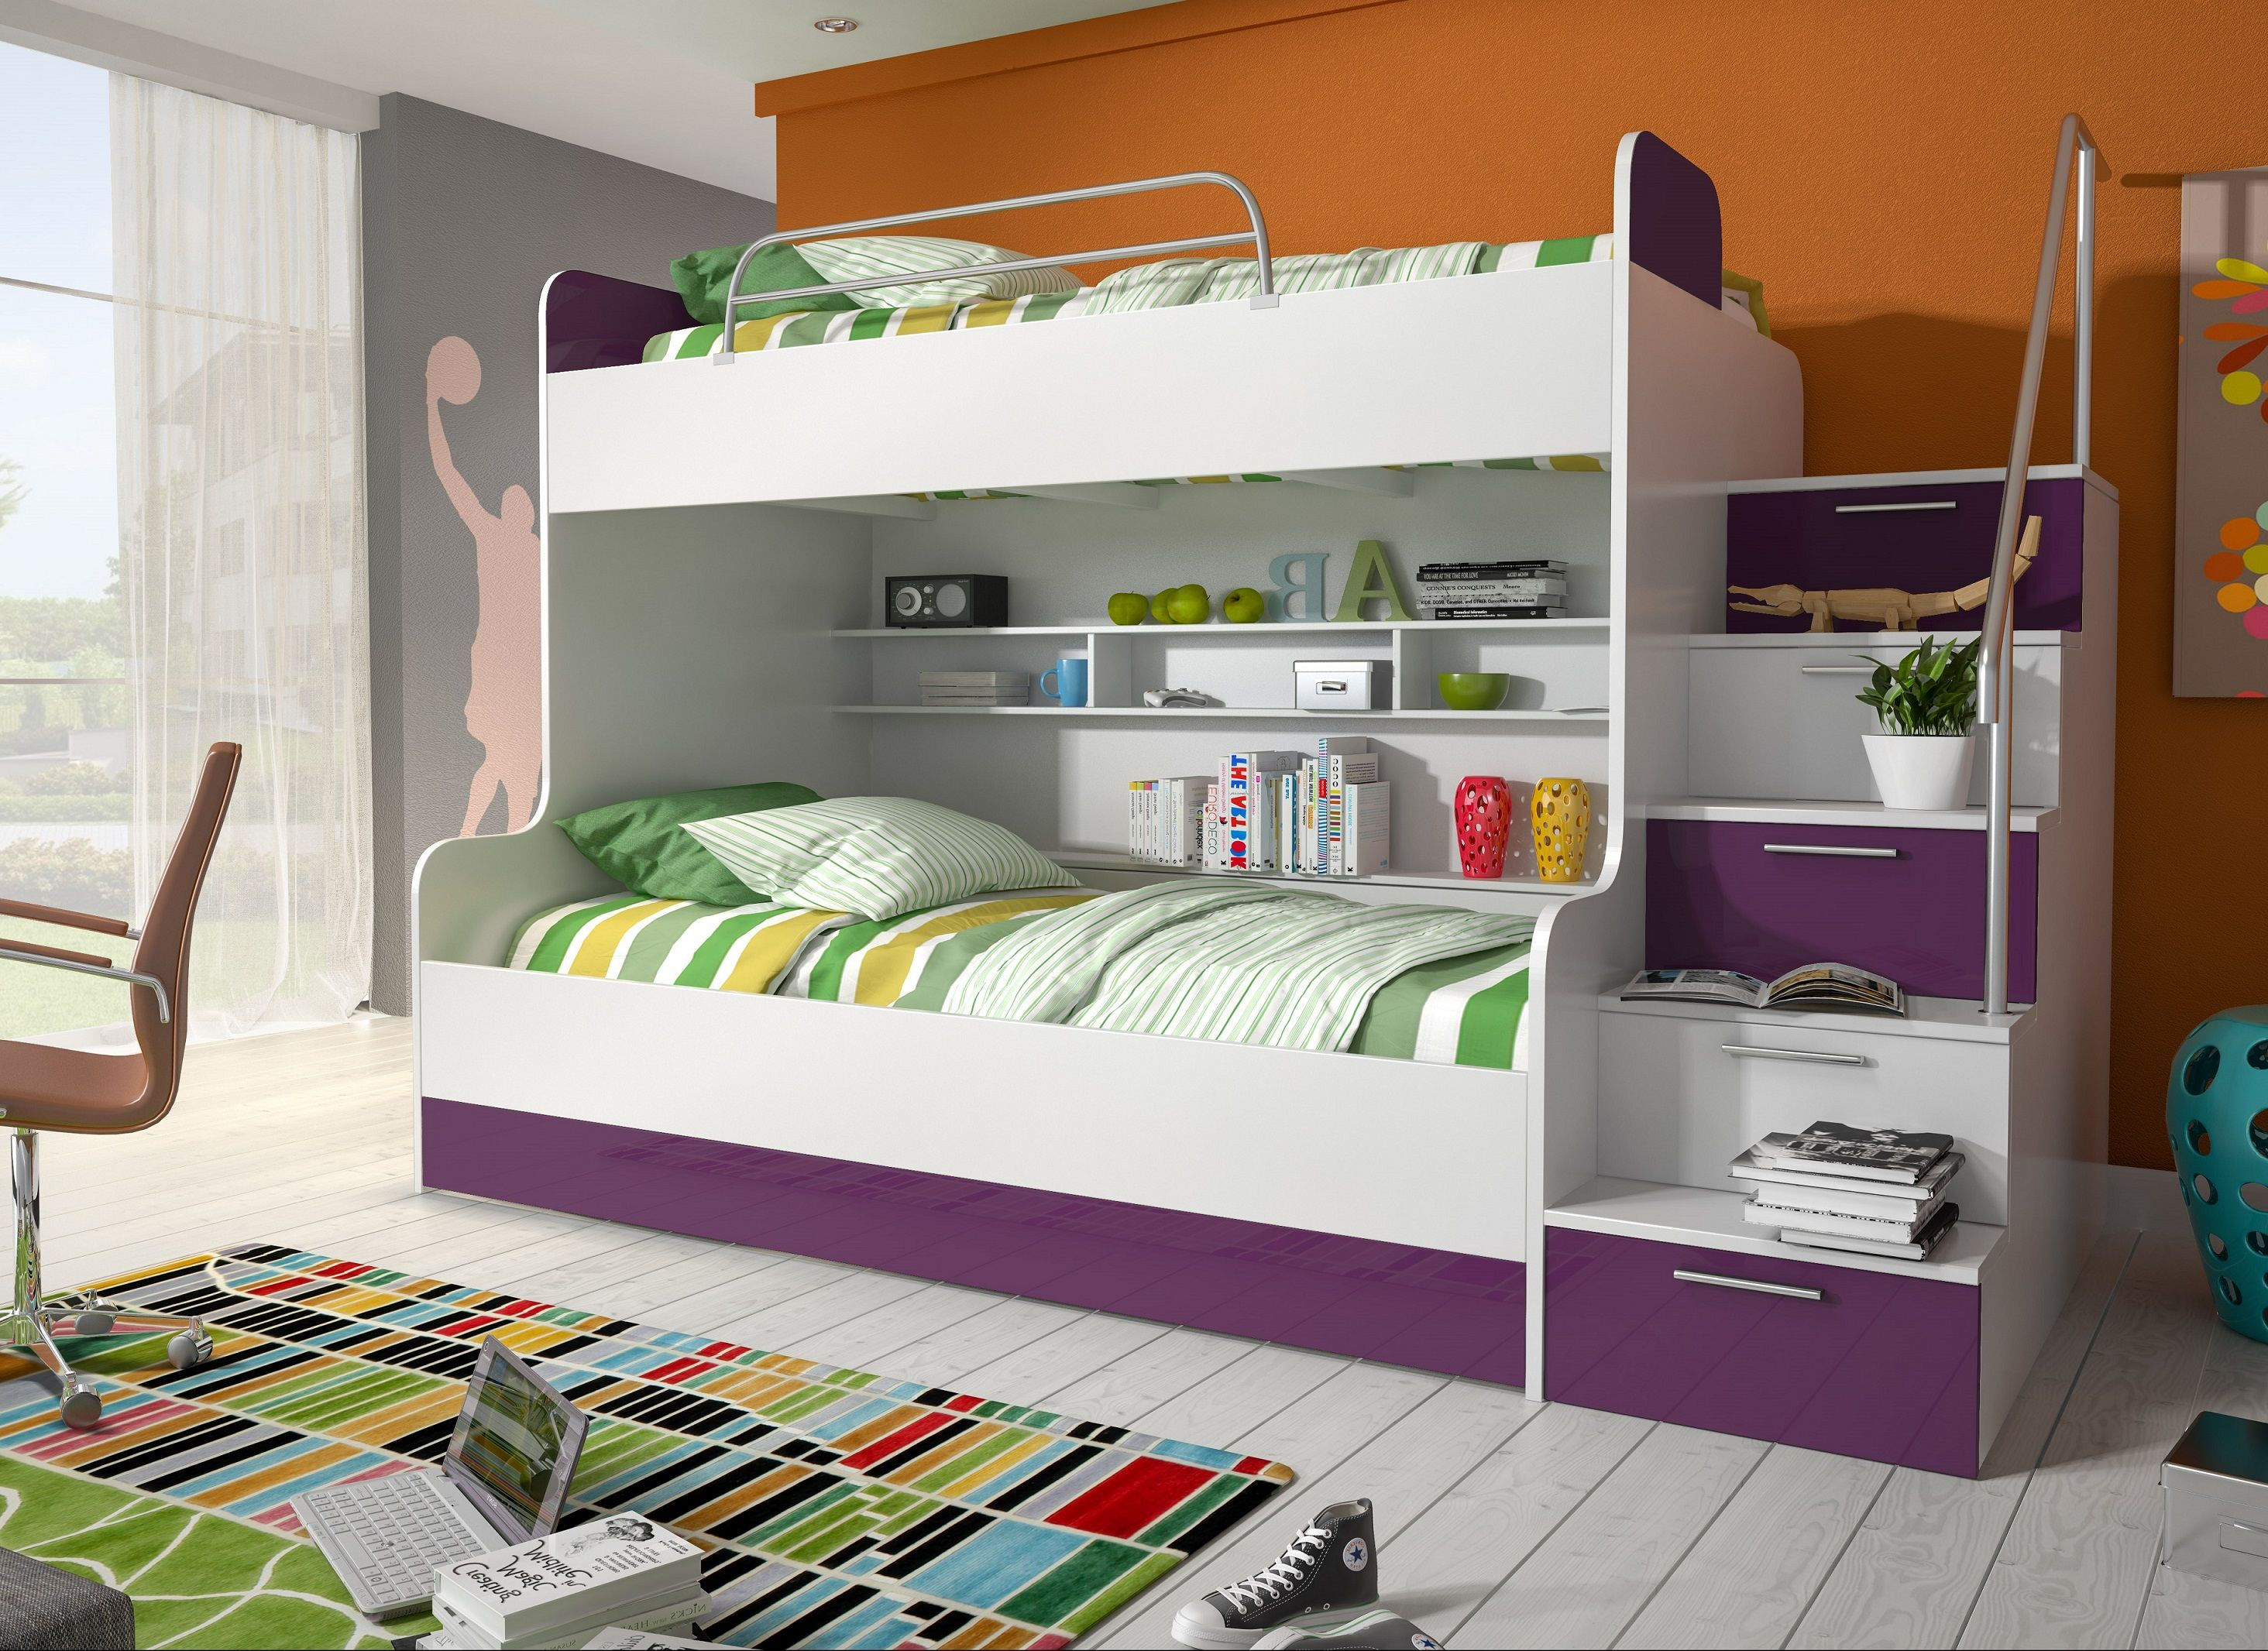 etagenbett kinderbett lila mit seitlicher treppe rechts m bel zeit. Black Bedroom Furniture Sets. Home Design Ideas